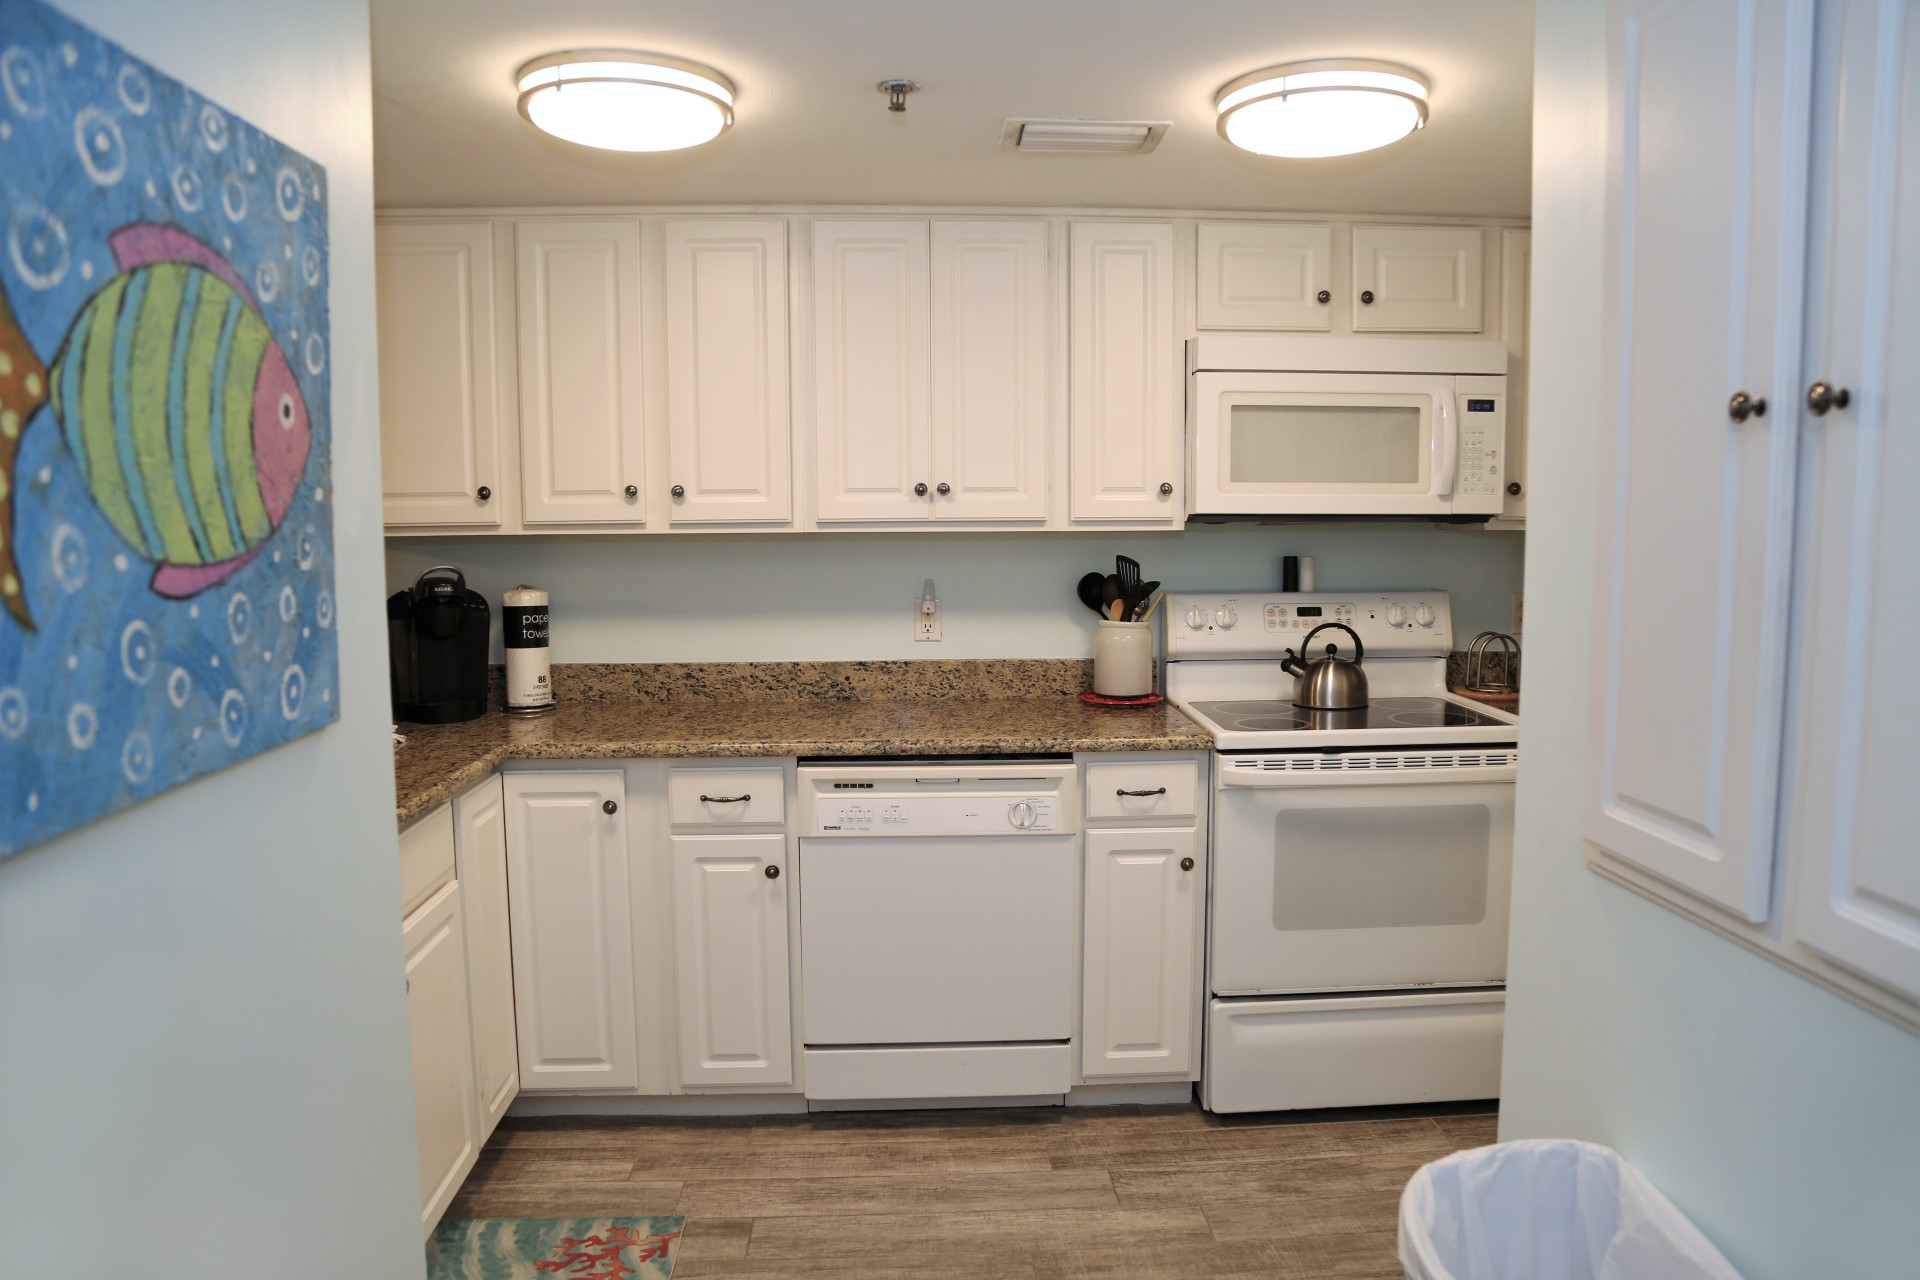 Tropical Winds 304 - Fully Equipped Kitchen with Granite Cou